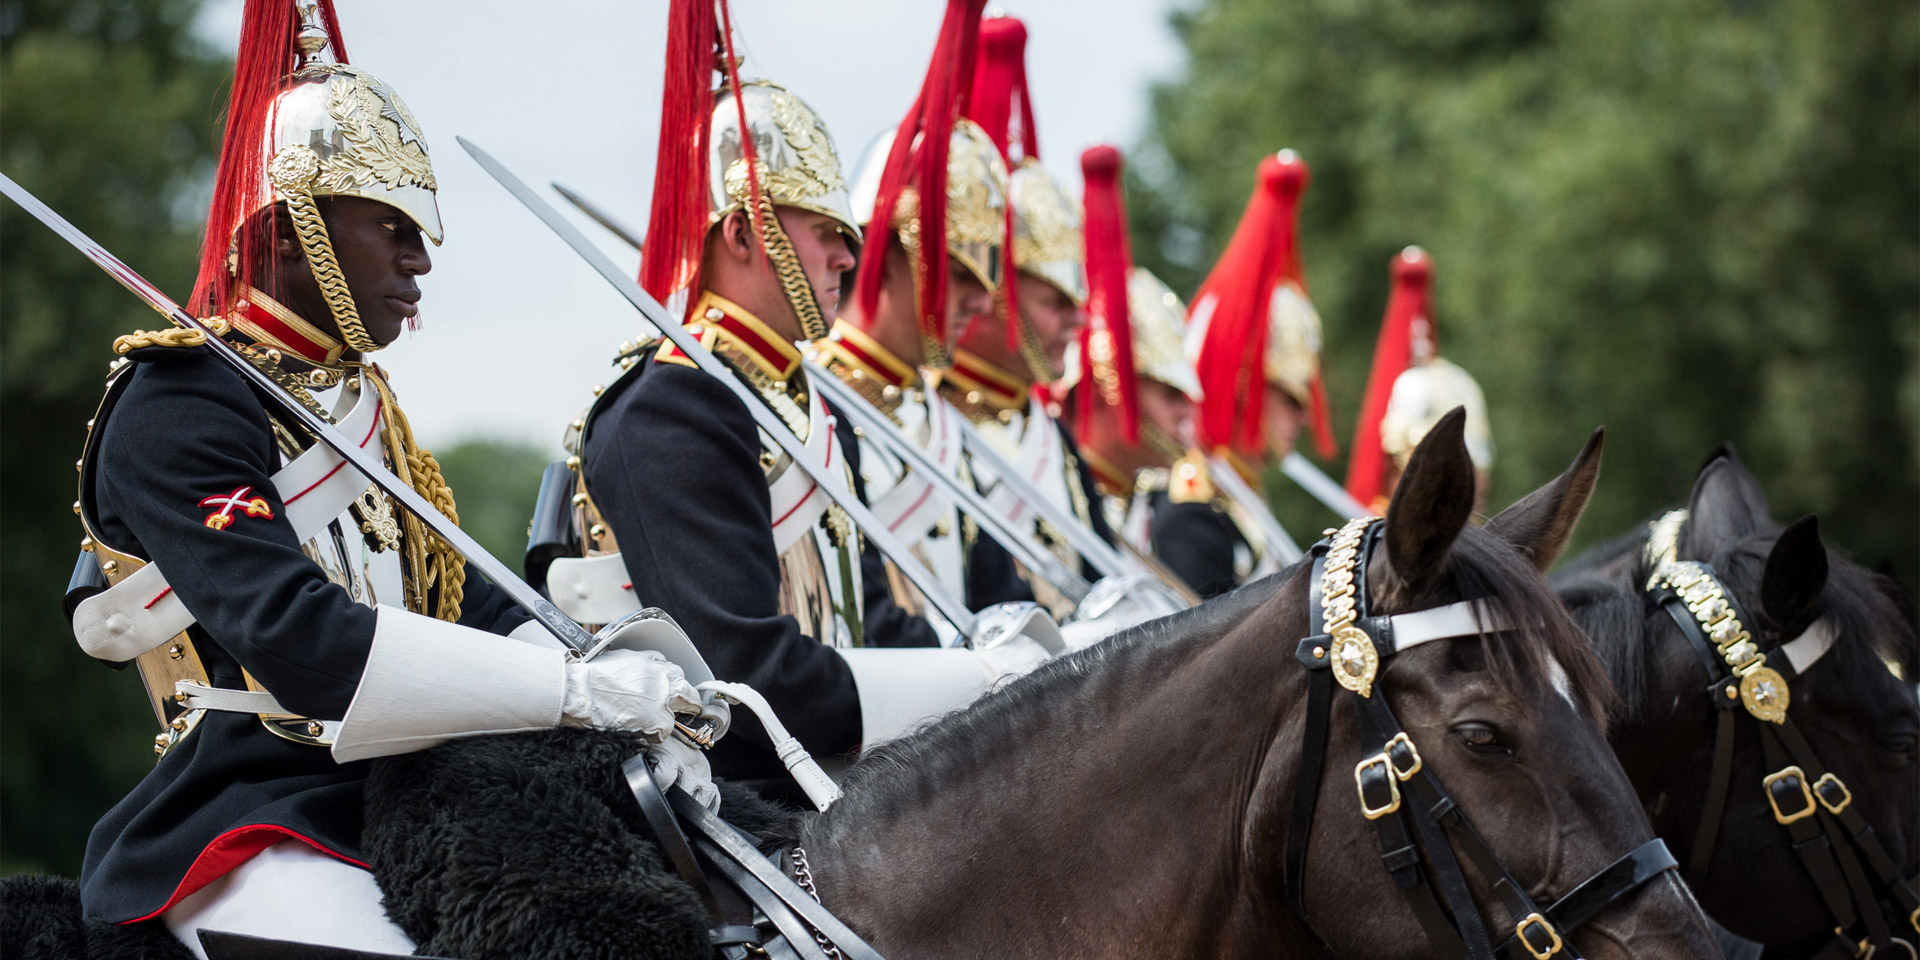 Household Cavalry Mounted Regiment, Horse Guards, London, 2016